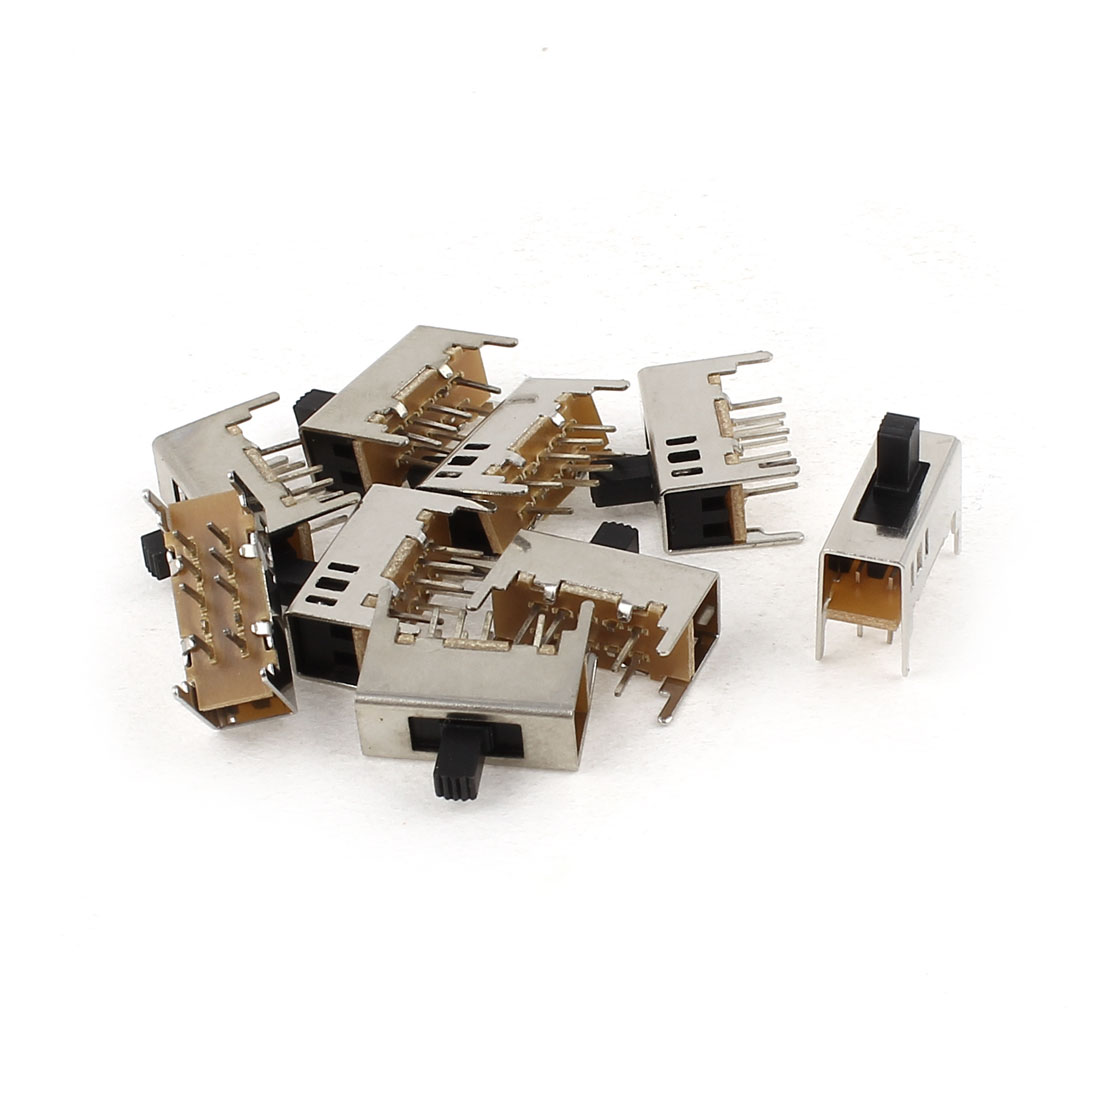 9Pcs 2P3T 3Position 8 Soldering Lug Pin Through Hole Mount Mini Slide Switch 16mm x 12mm x 7mm